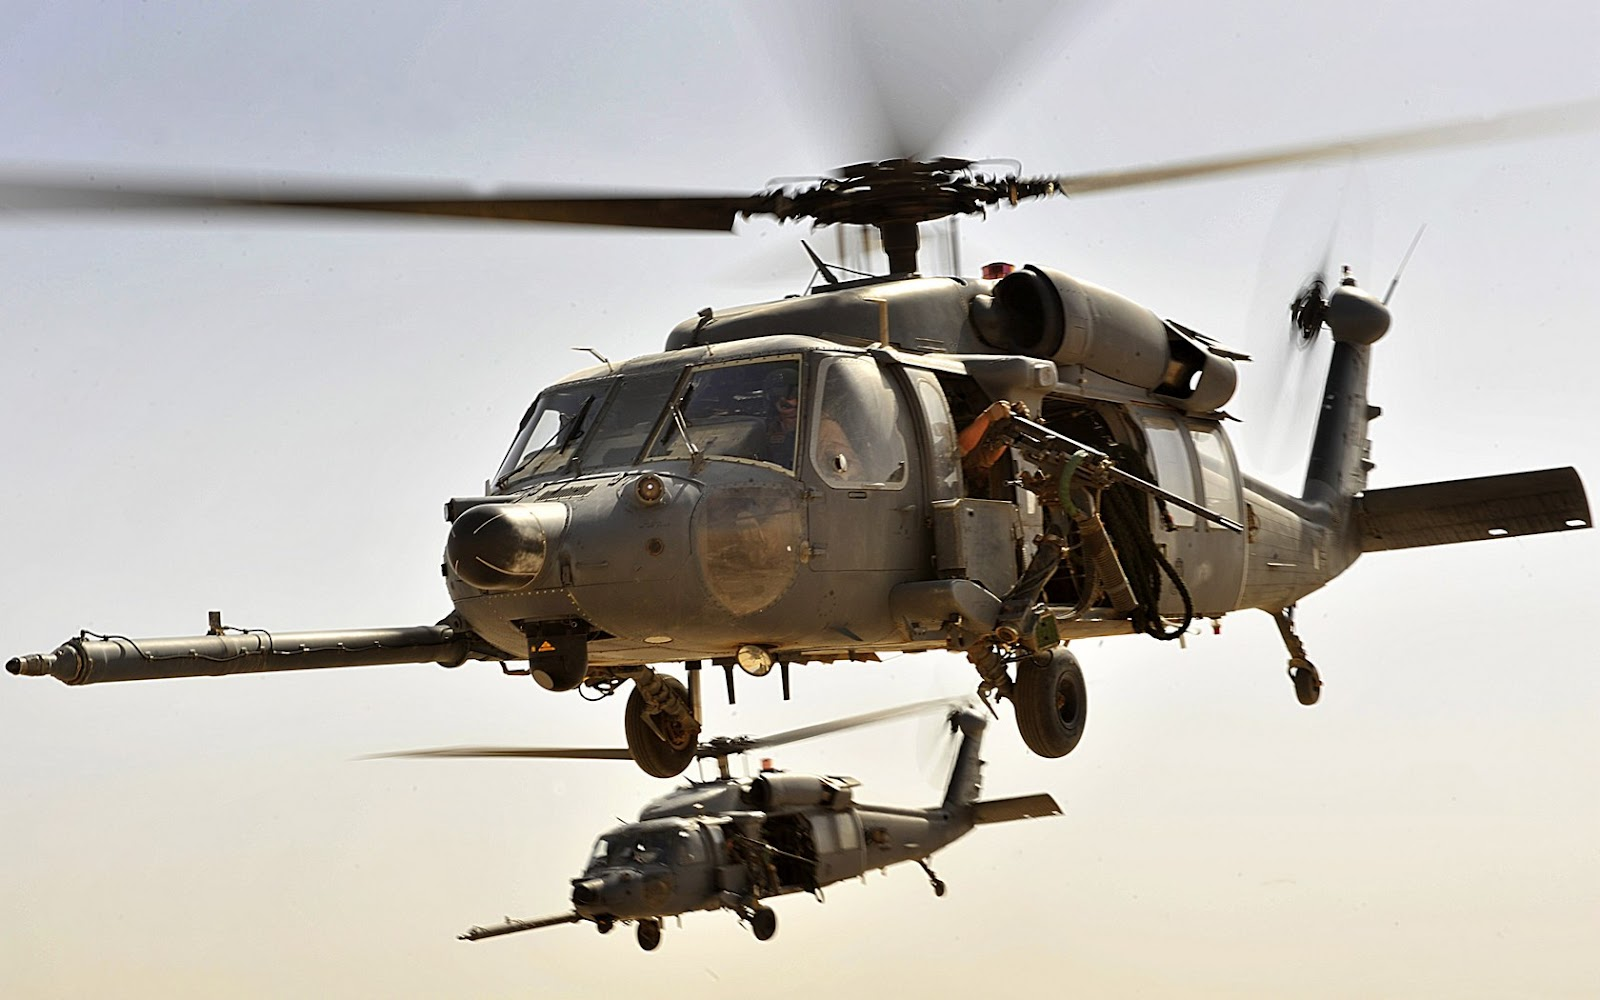 hh 60g pave hawk helicopter with Top 41 Most Incredible And Amazing on 2150191 further Hh 60 Pics further Top 41 Most Incredible And Amazing besides 87414094 furthermore File Defense gov News Photo 120314 F FC540 031   An Alaska Air National Guard HC 130 aircraft and HH 60 Pave Hawk helicopter practice helicopter aerial refueling over Joint Base.